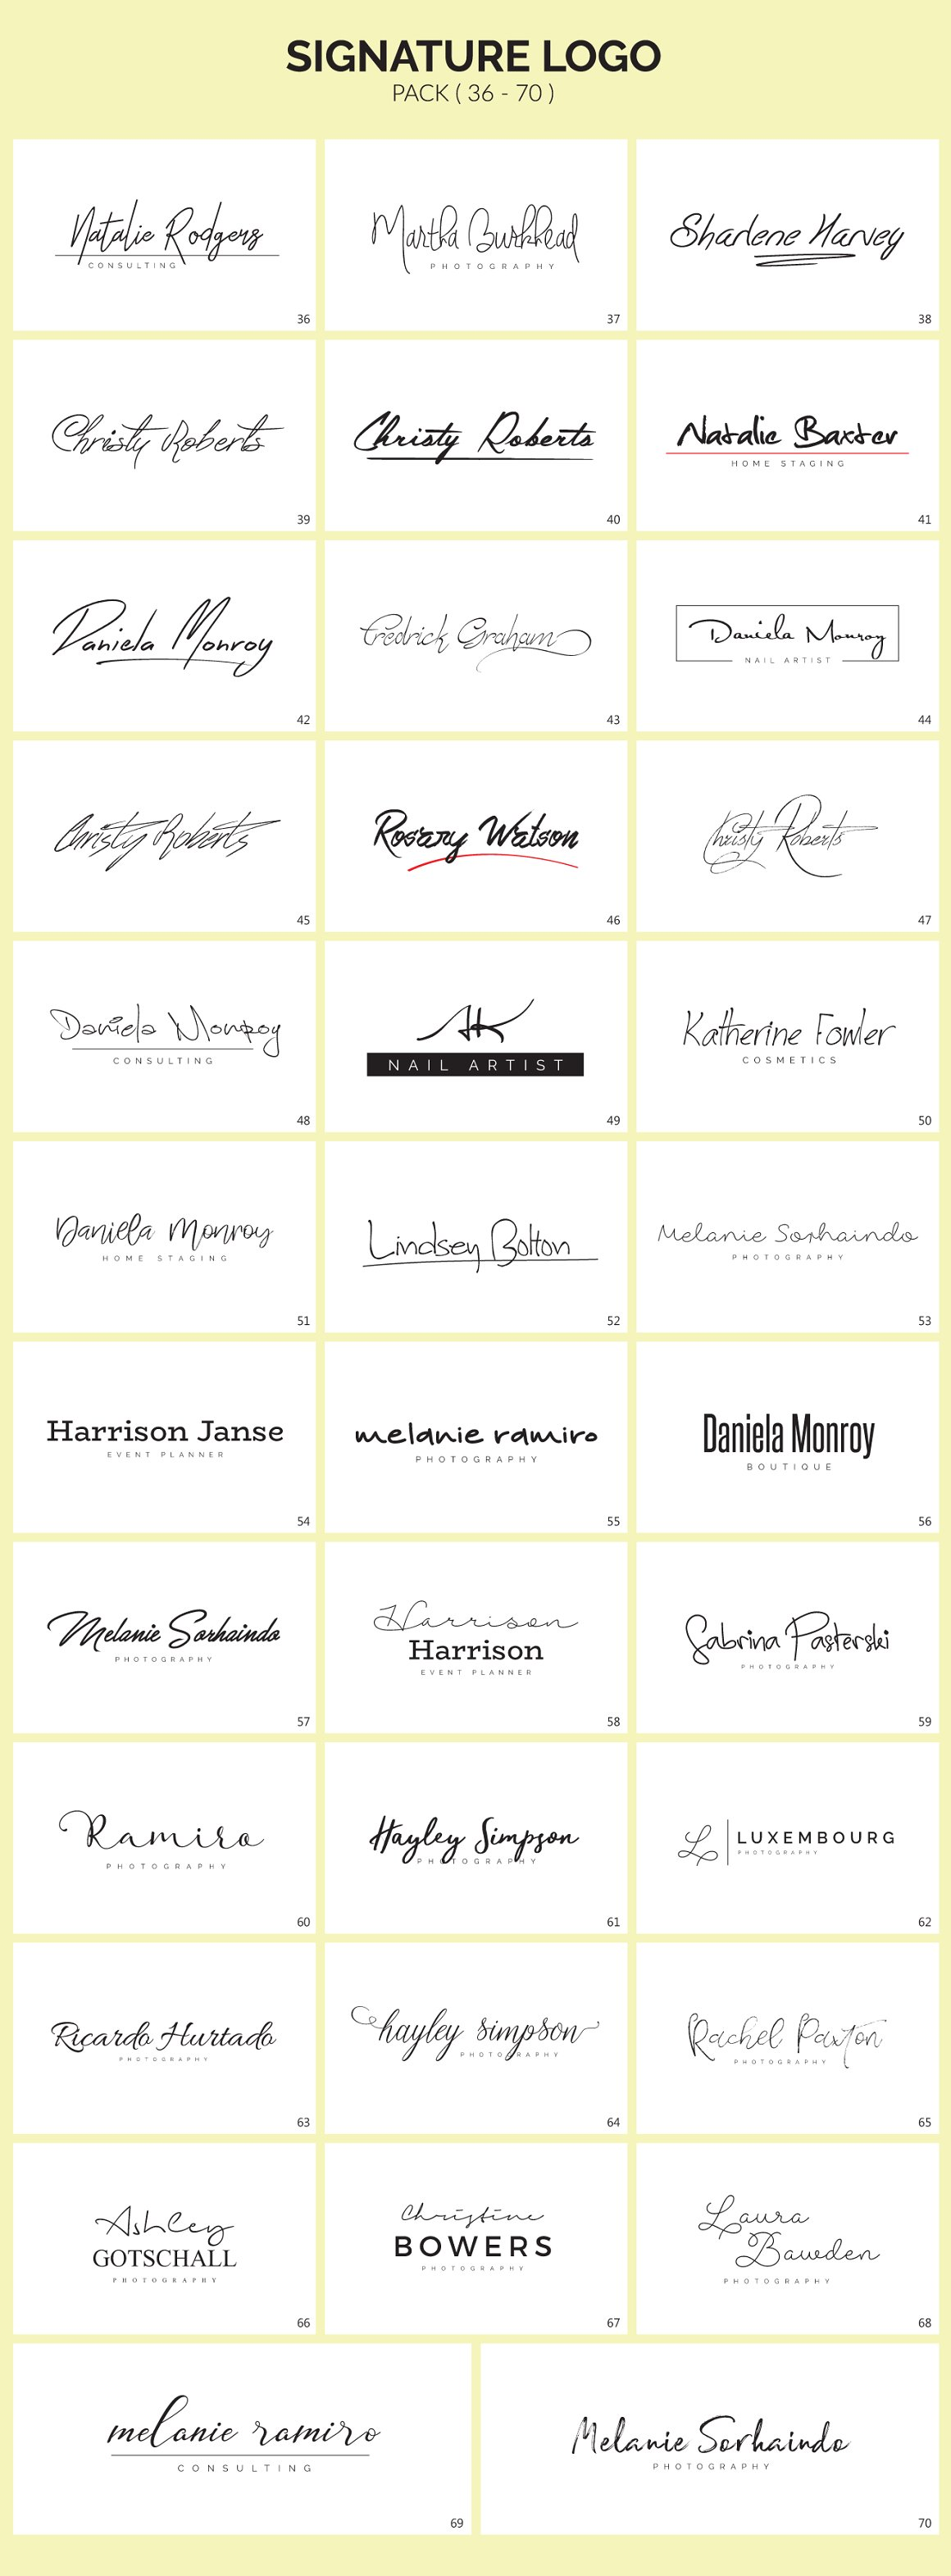 70 Signature Logo Bundle - signature logos 2